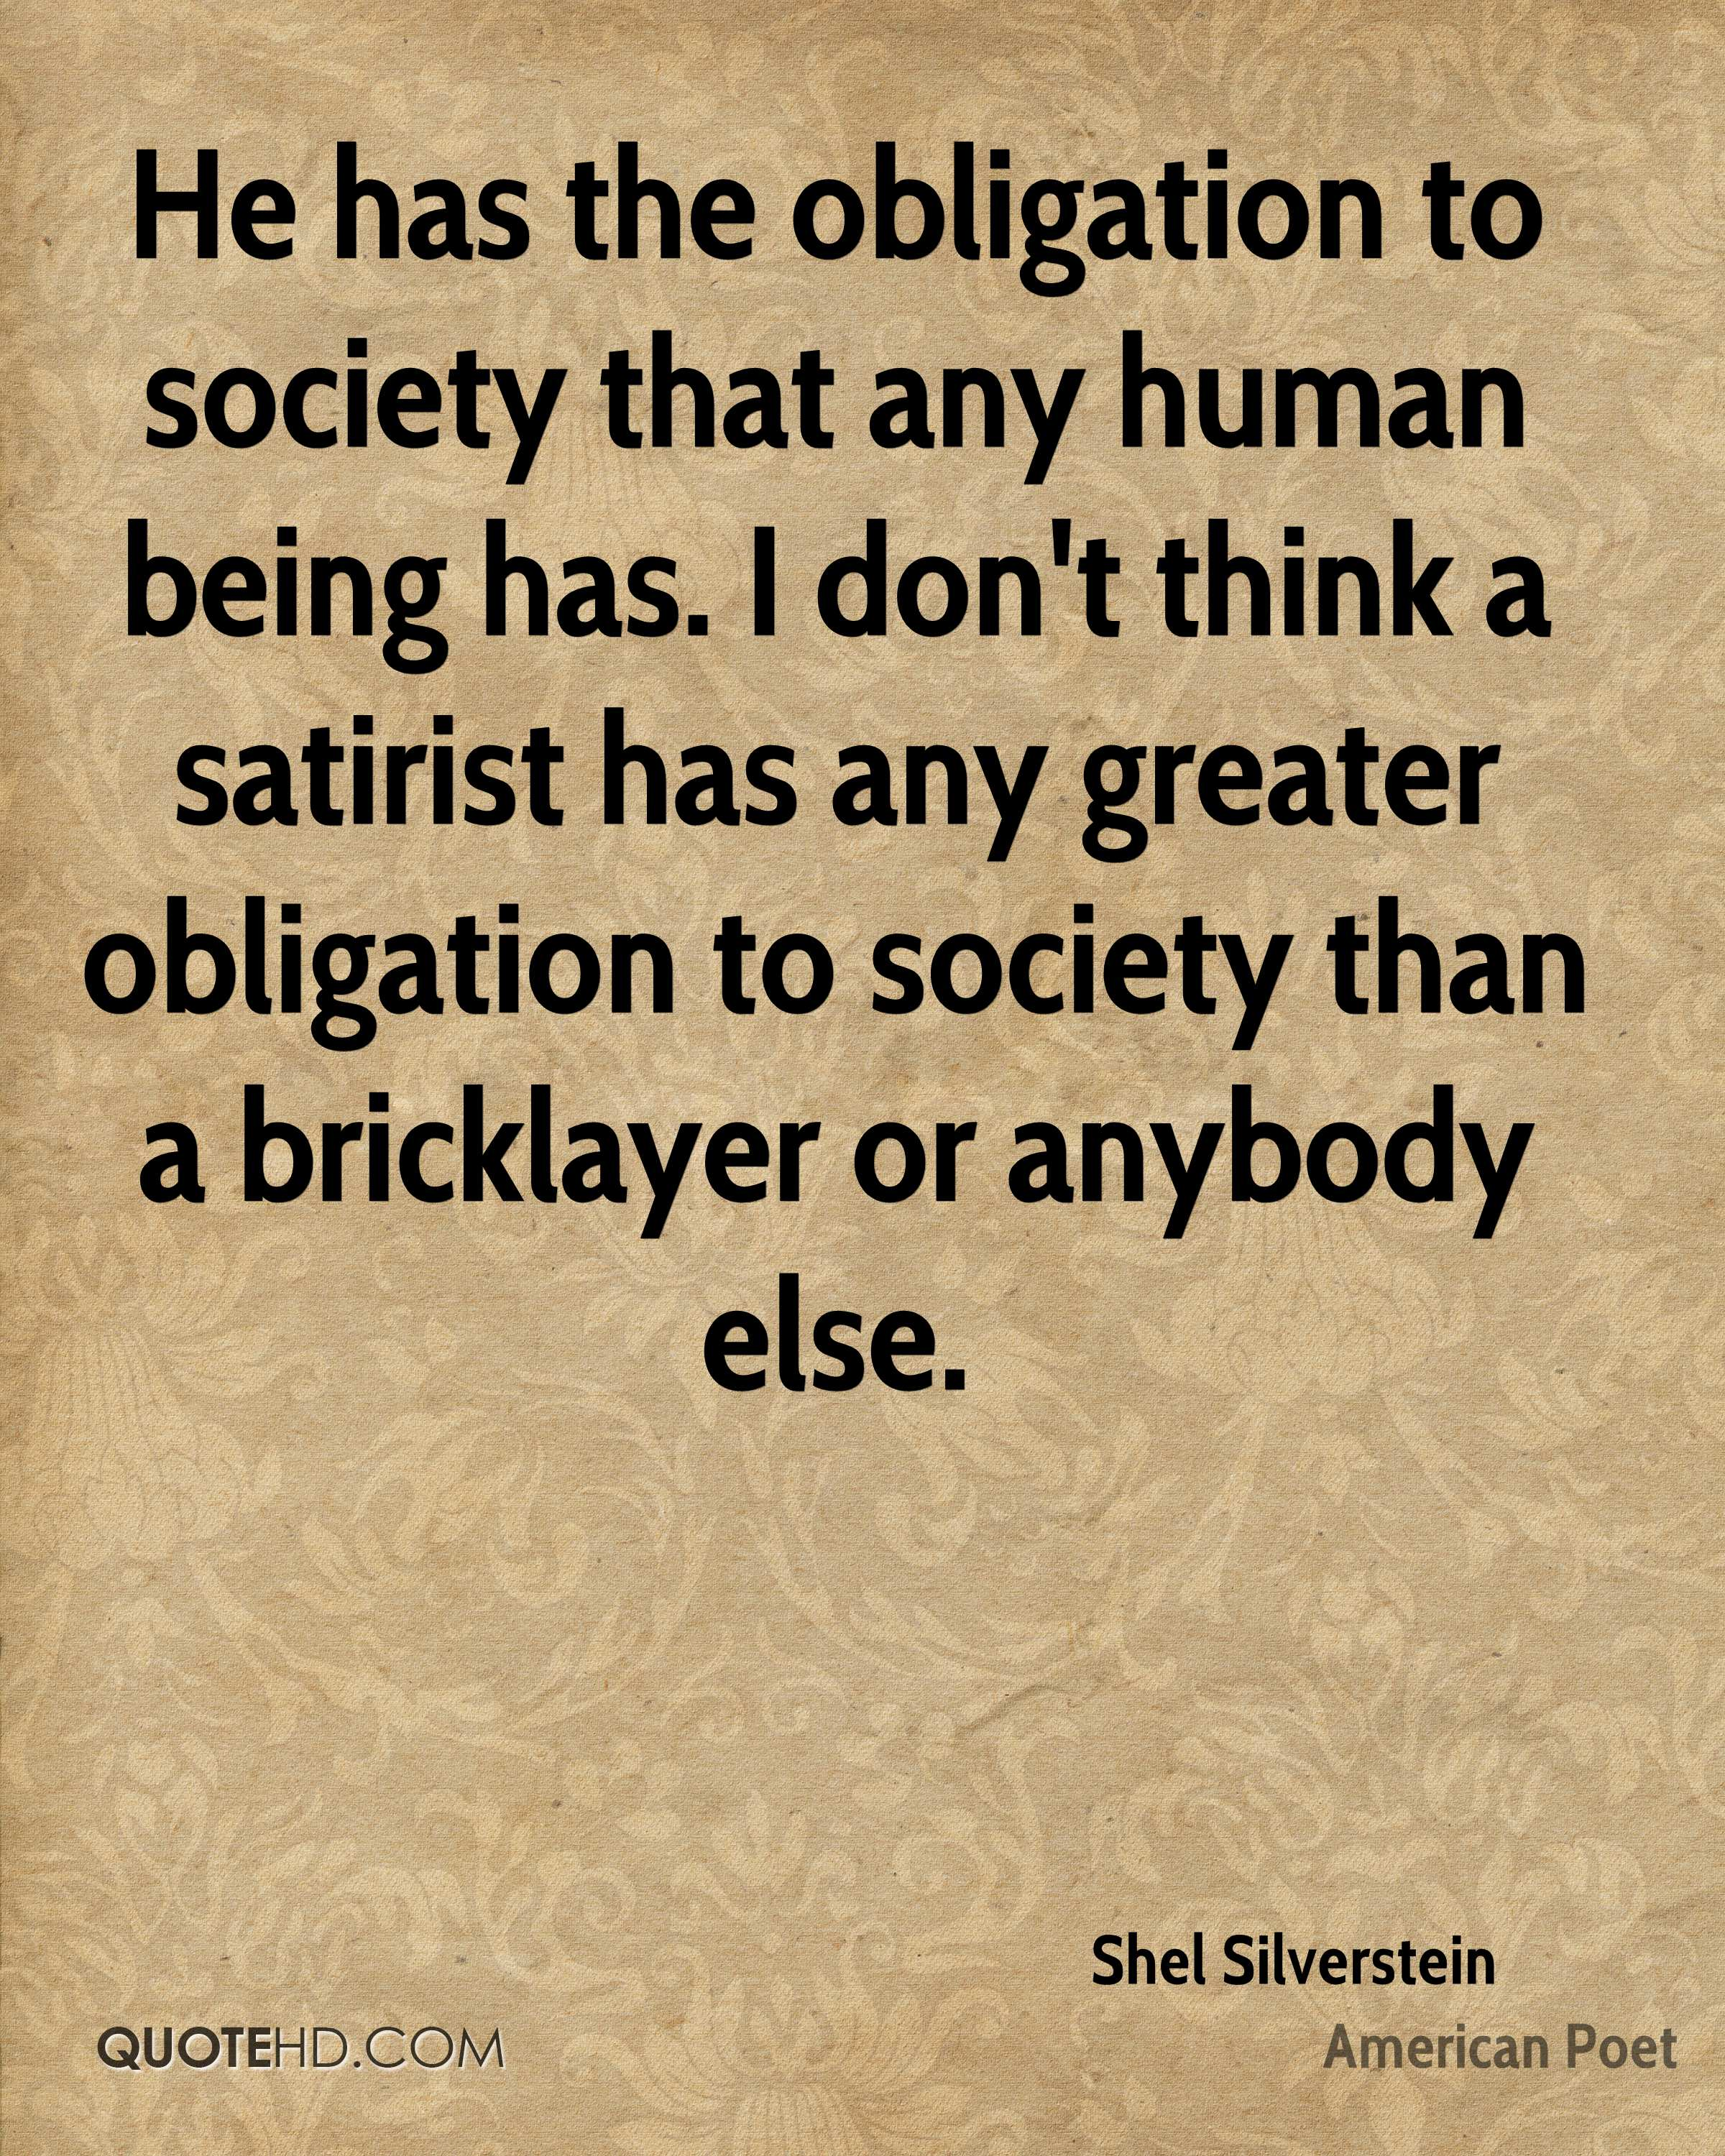 He has the obligation to society that any human being has. I don't think a satirist has any greater obligation to society than a bricklayer or anybody else.